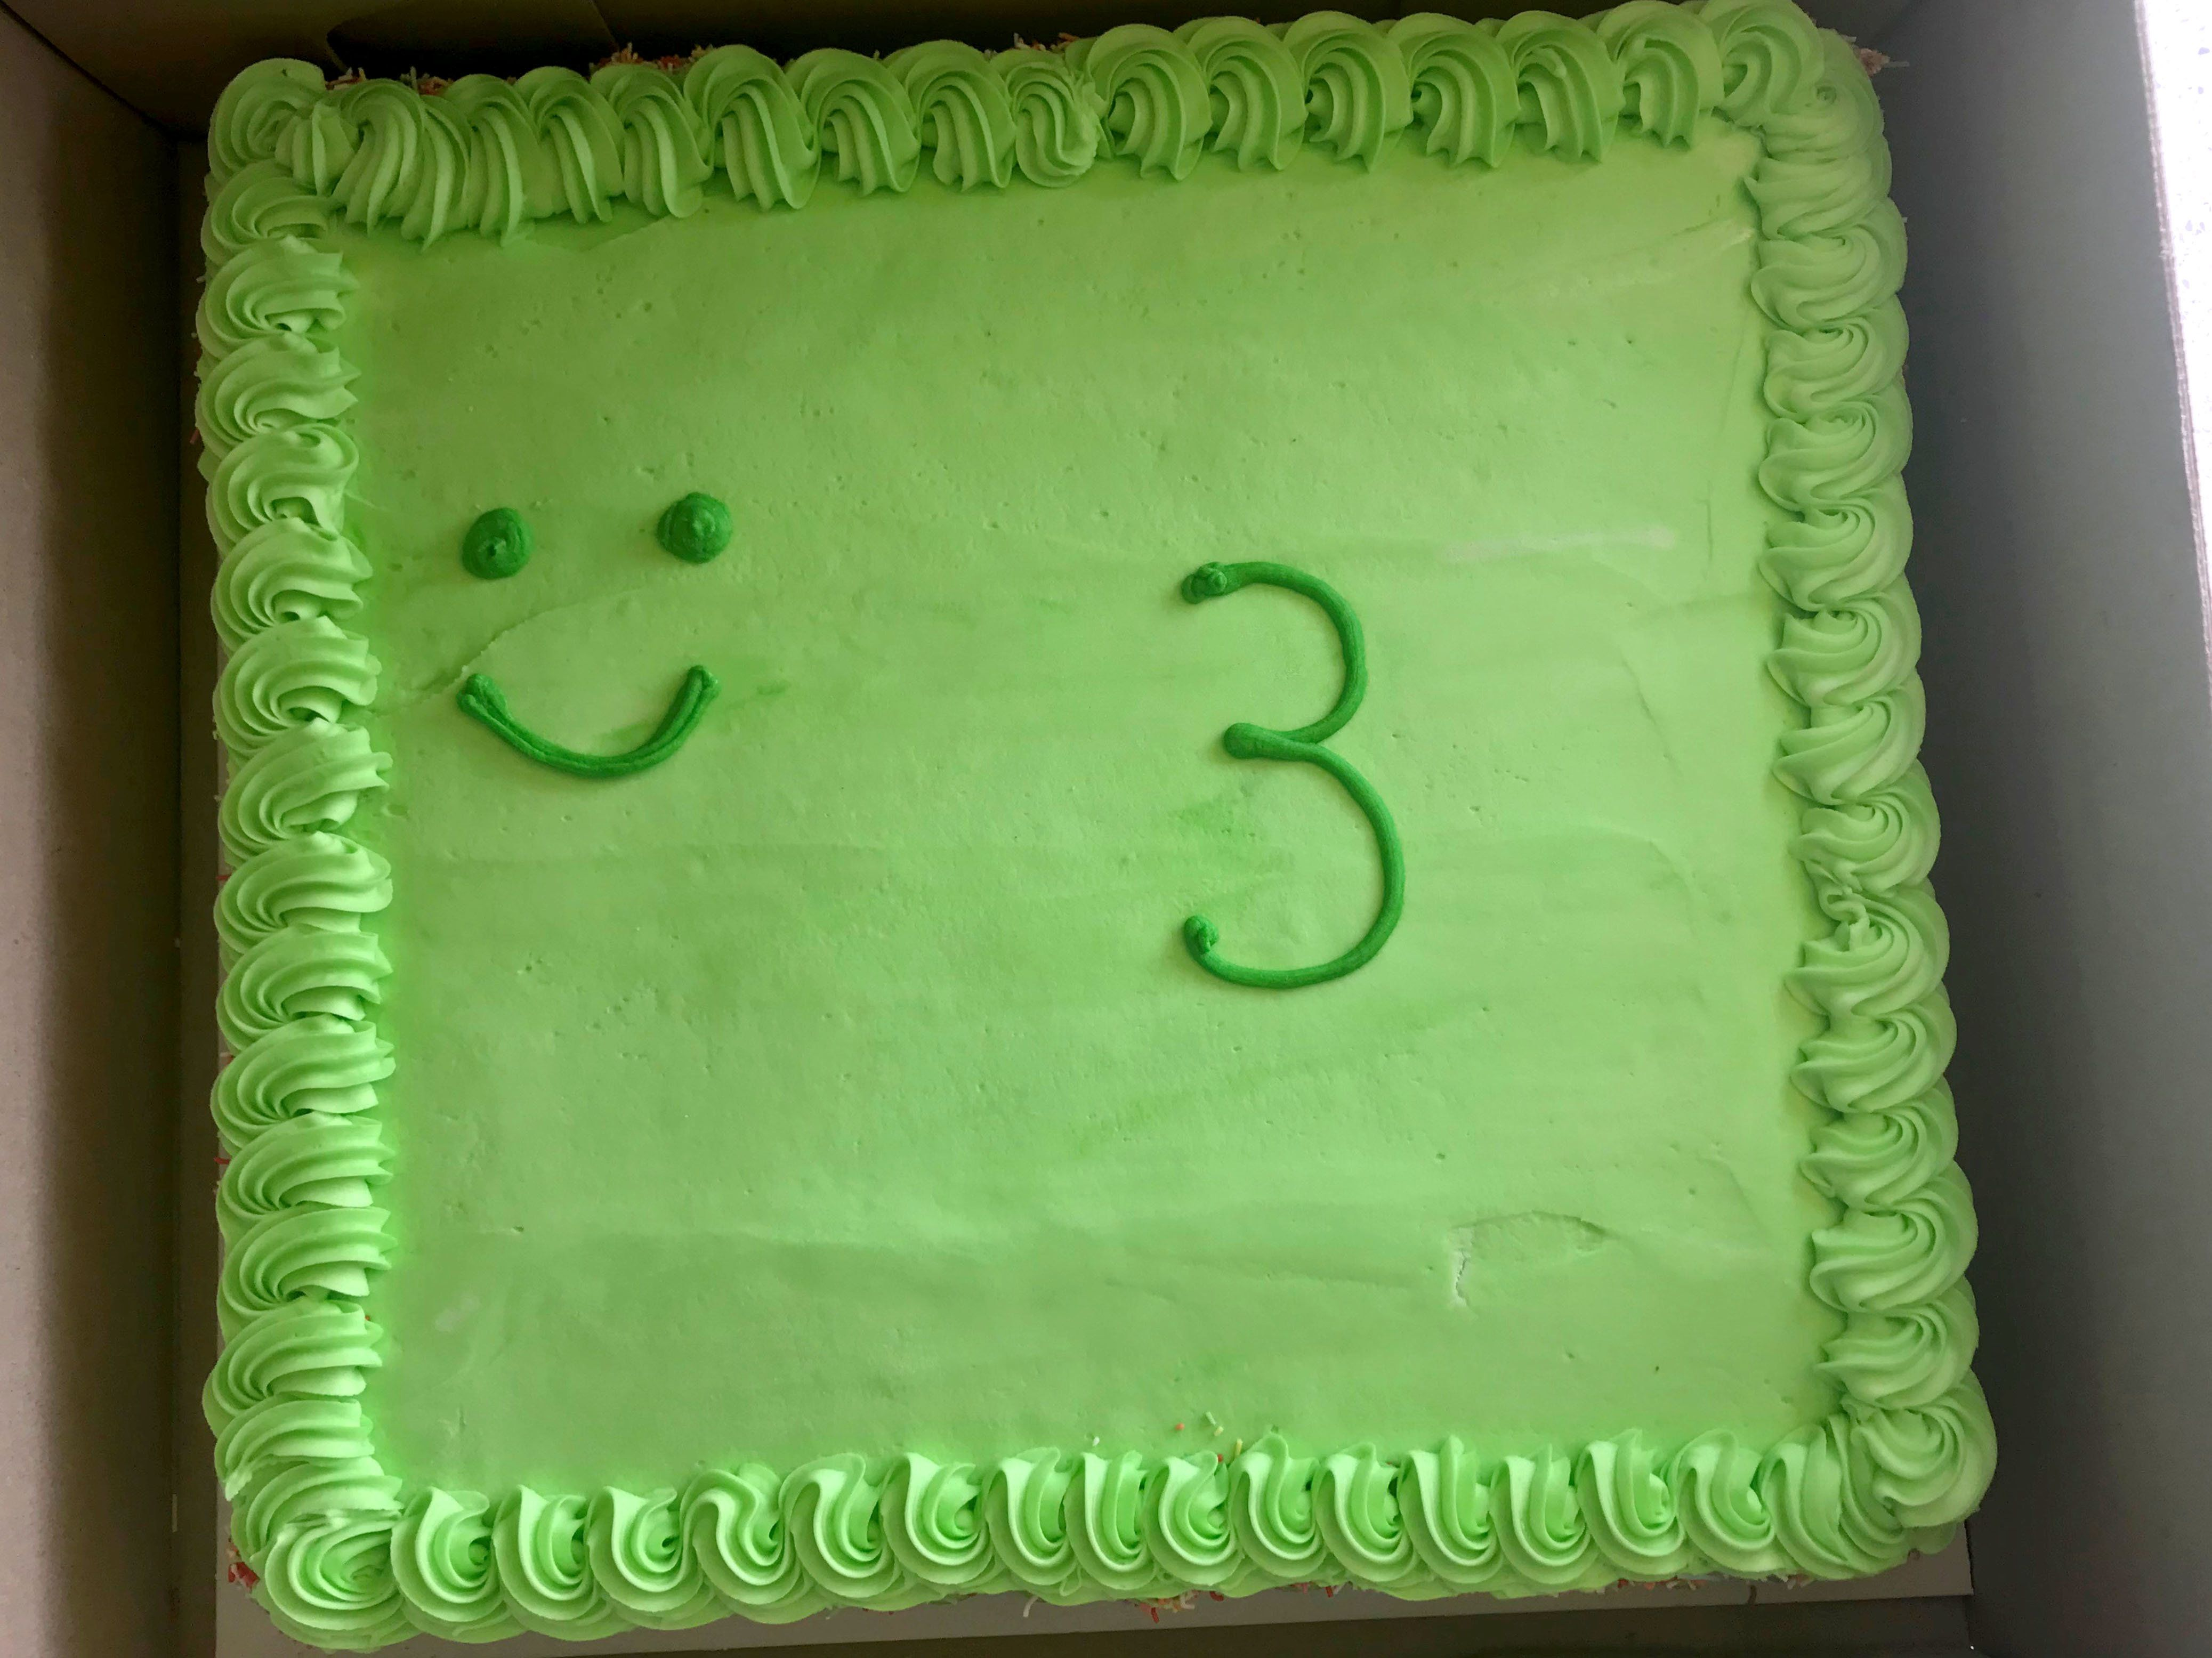 Parents Ordered A 'Frog Cake' For Their Kid's Birthday, And This Is What They Got